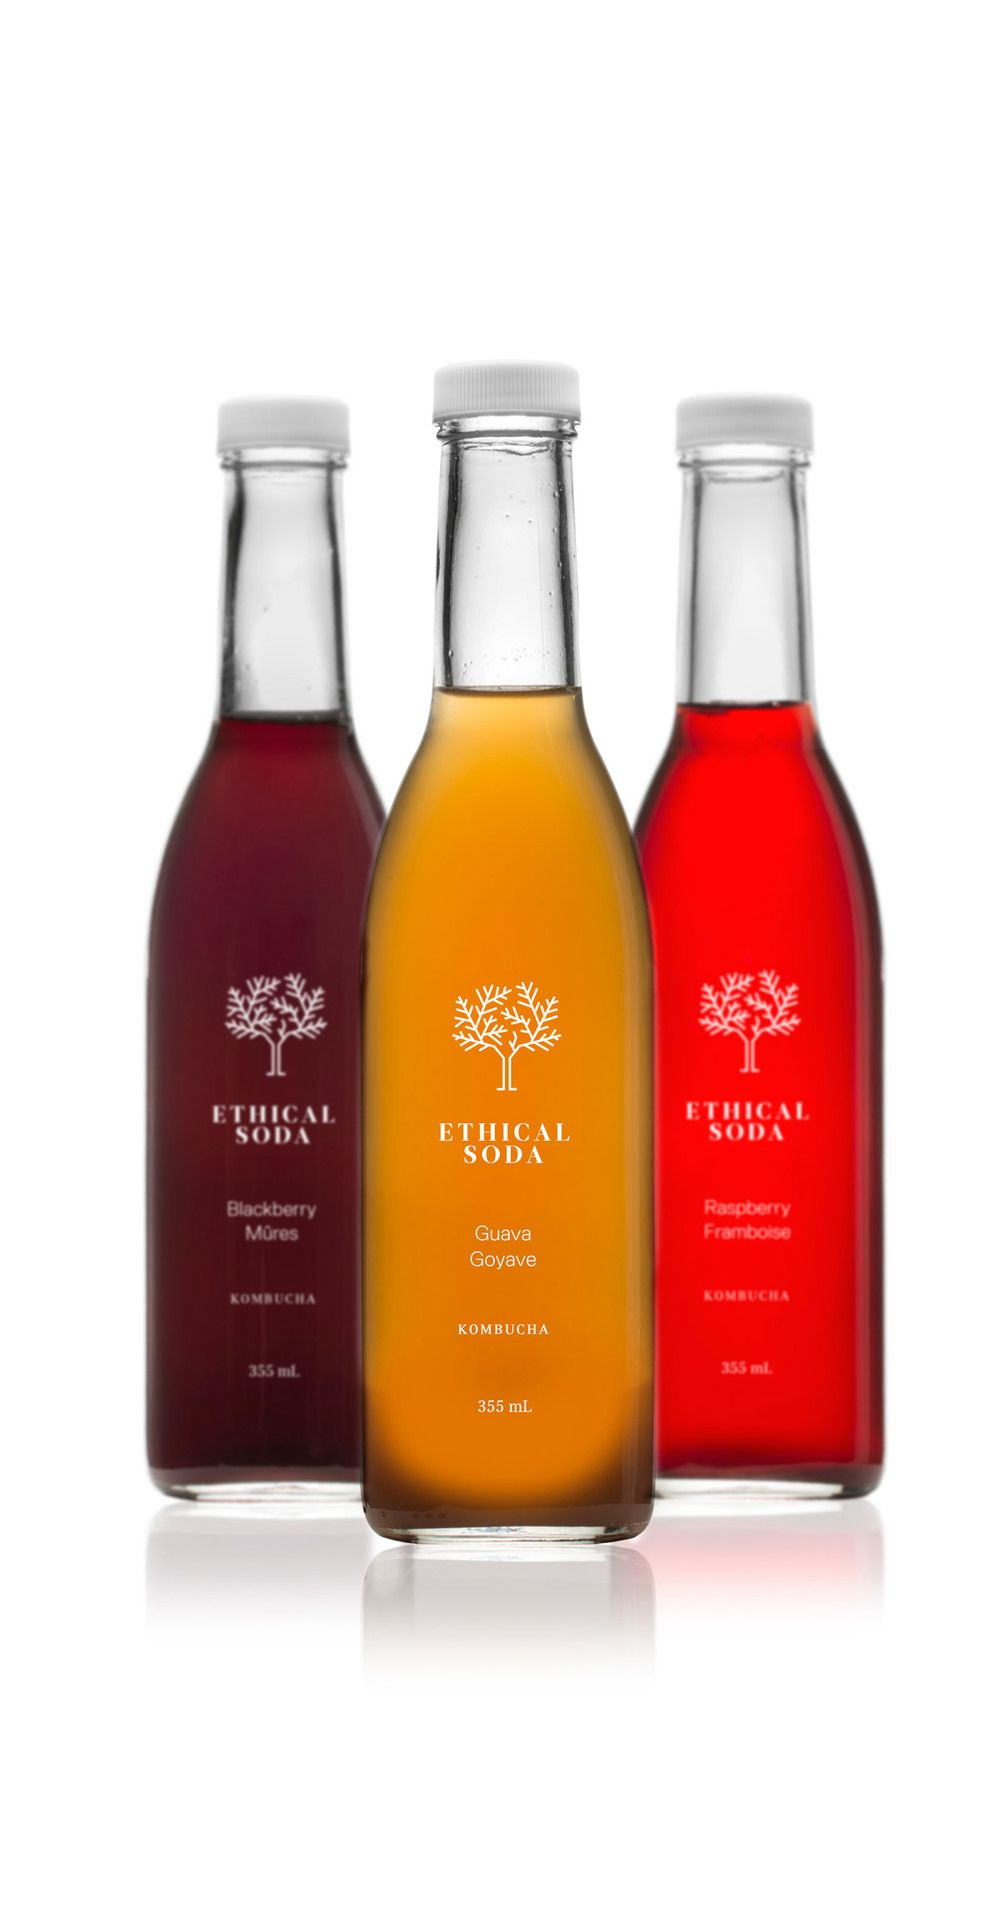 Spotlight Glasfurd Walker The Dieline Packaging Branding Design Innovation News Wine Bottle Label Design Bottle Label Design Kombucha Labels